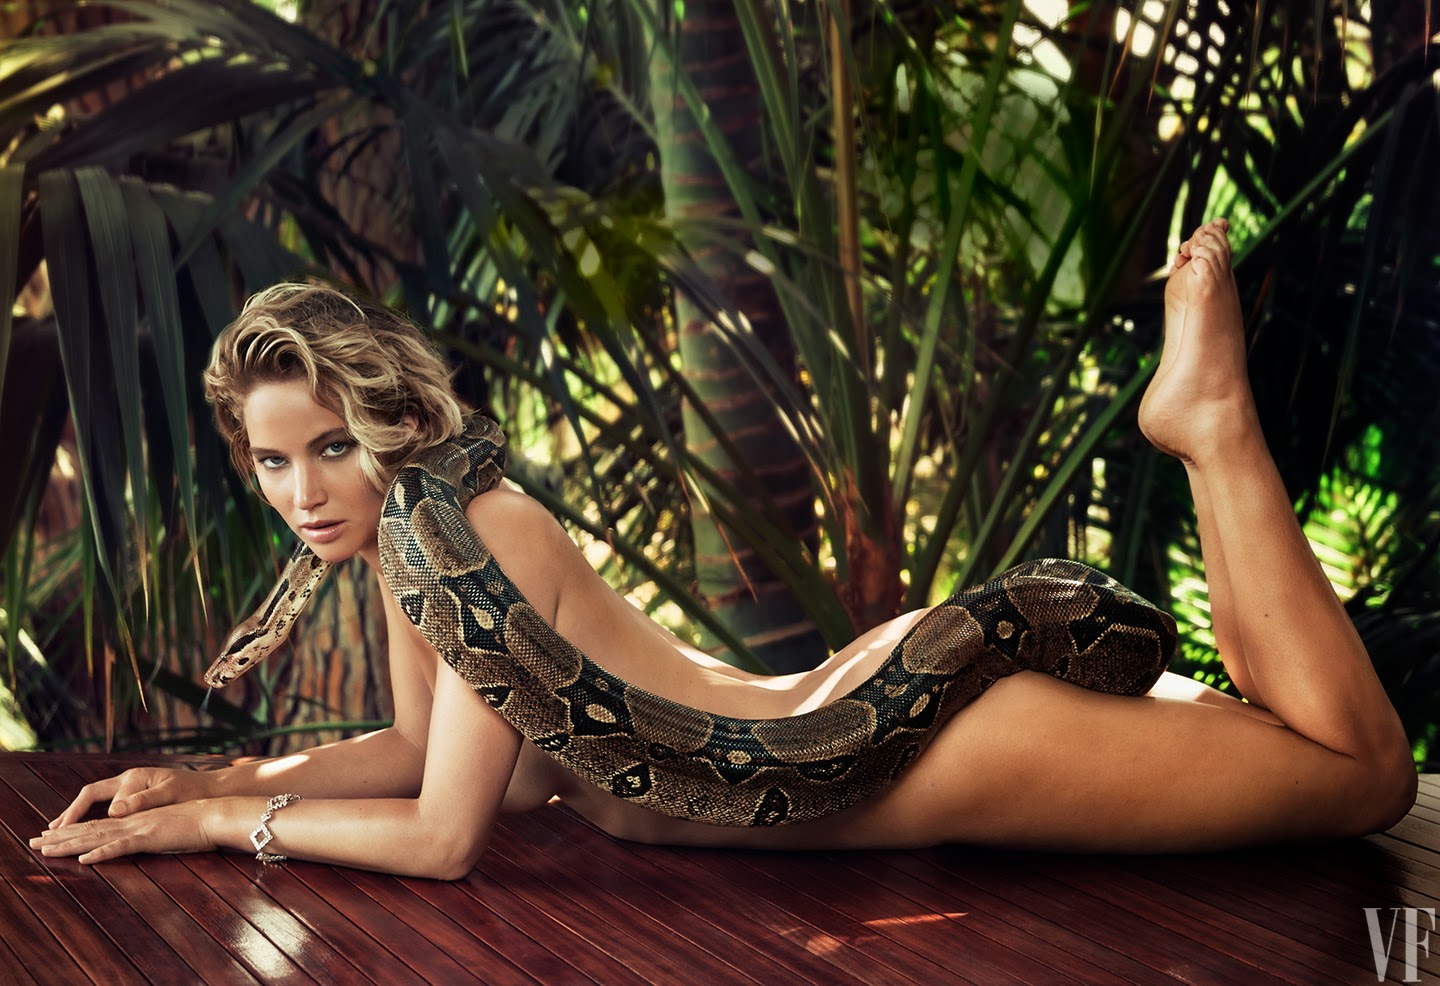 Jennifer Lawrence bravely bares it all with a boa constrictor for Vanity Fair's March 2015 edition